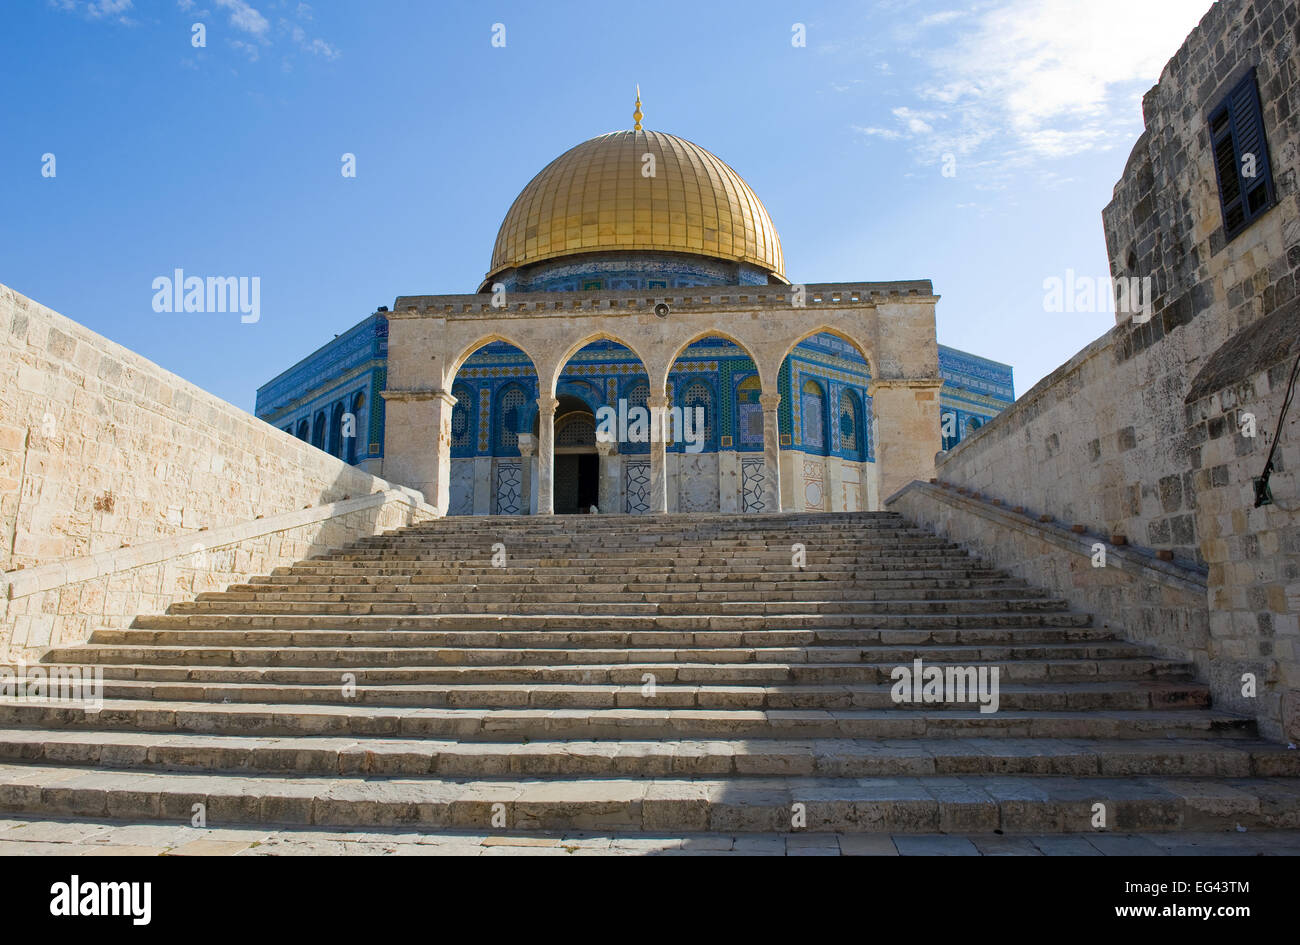 The Dome of the rock on the Temple Mount in Jerusalem - Stock Image